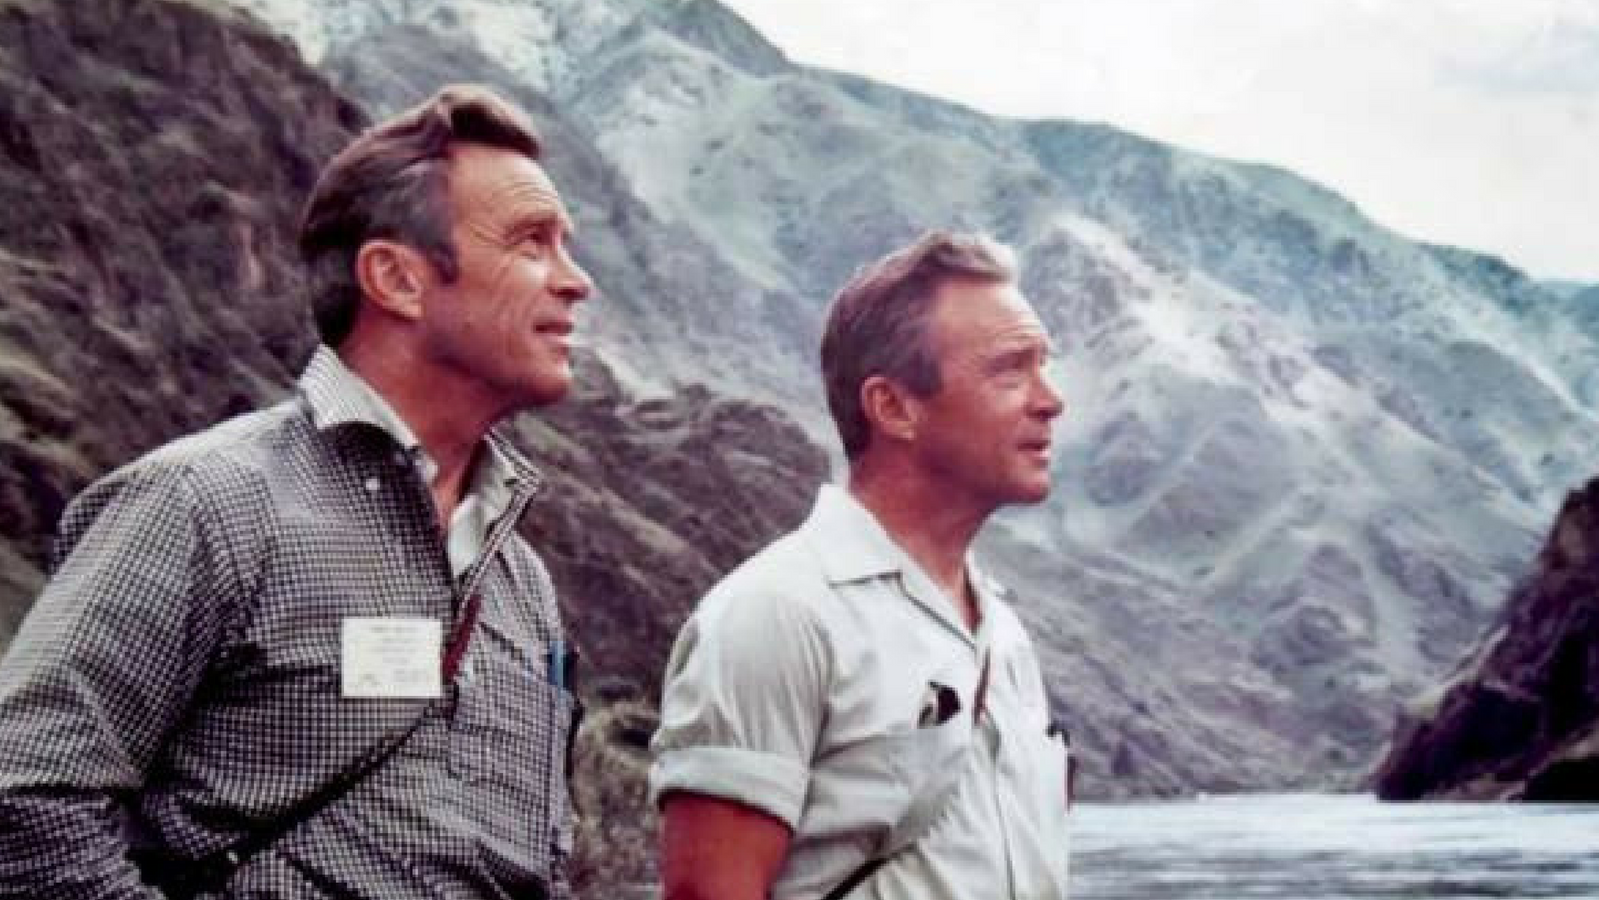 John and Frank Craighead, are shown in Hells Canyon in 1970.